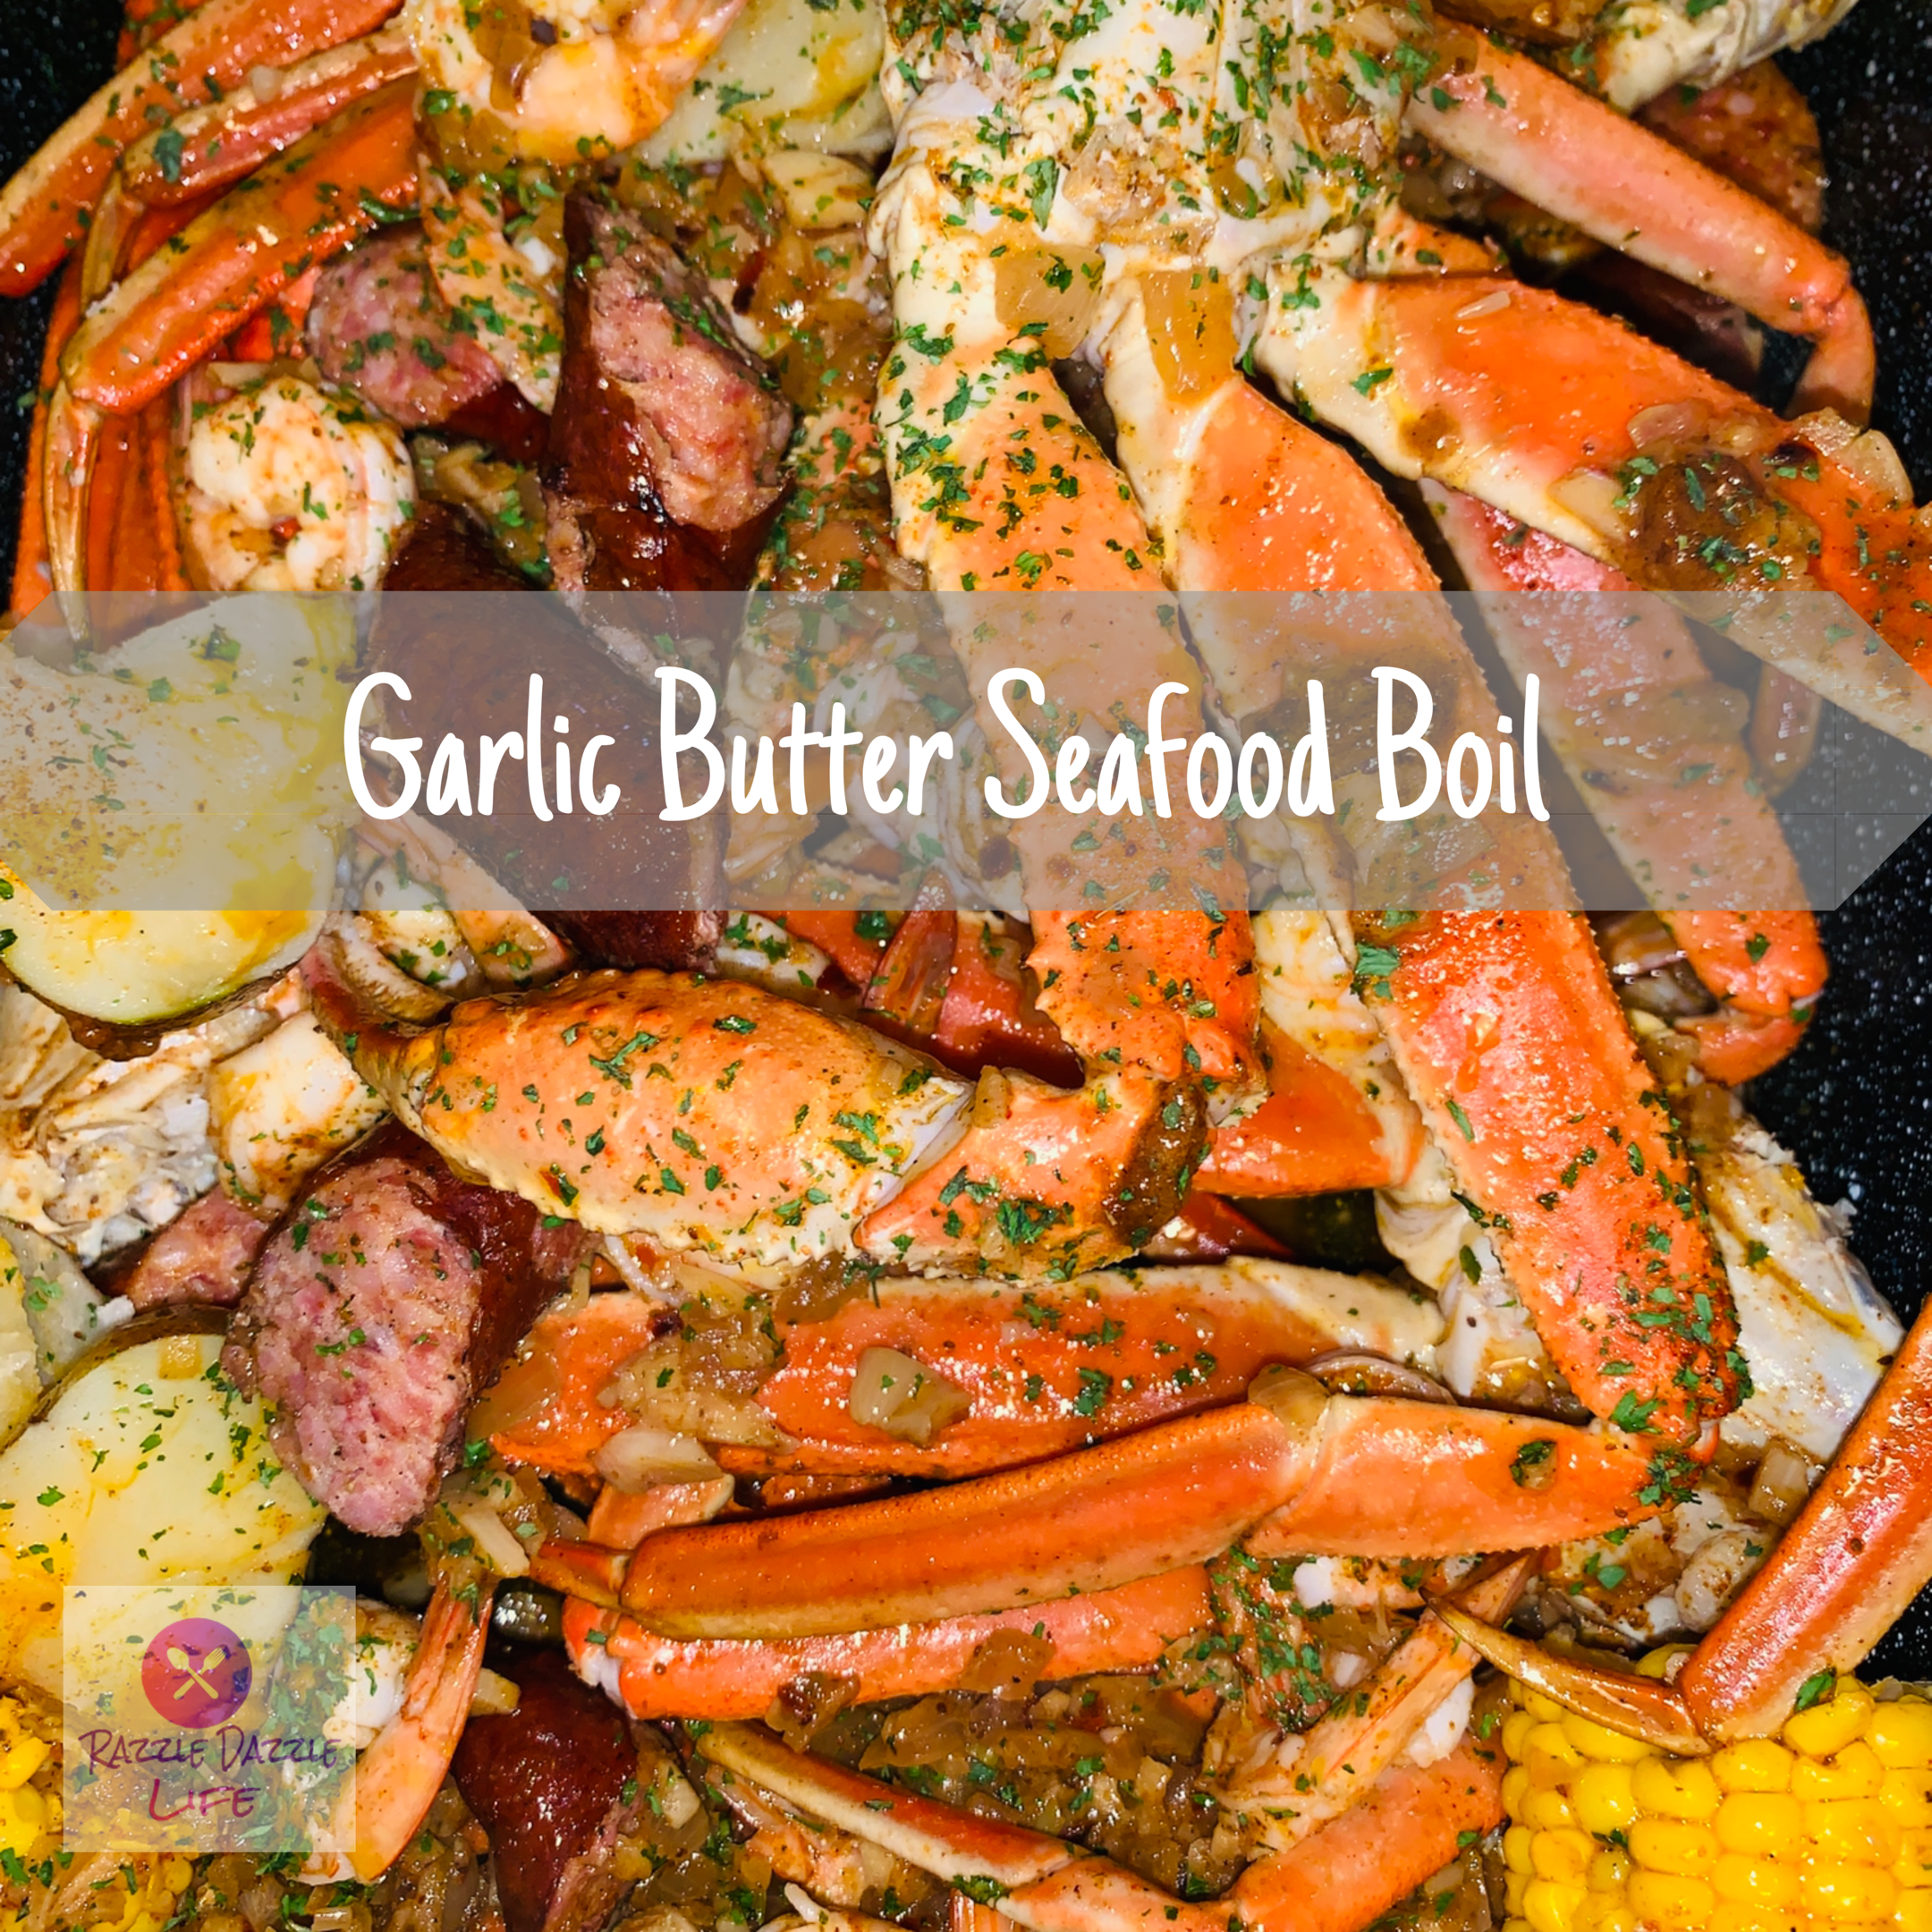 Recipes From Our Table Razzle Dazzle Life Seafood Boil Recipes Seafood Recipes Crab Seafood Dinner